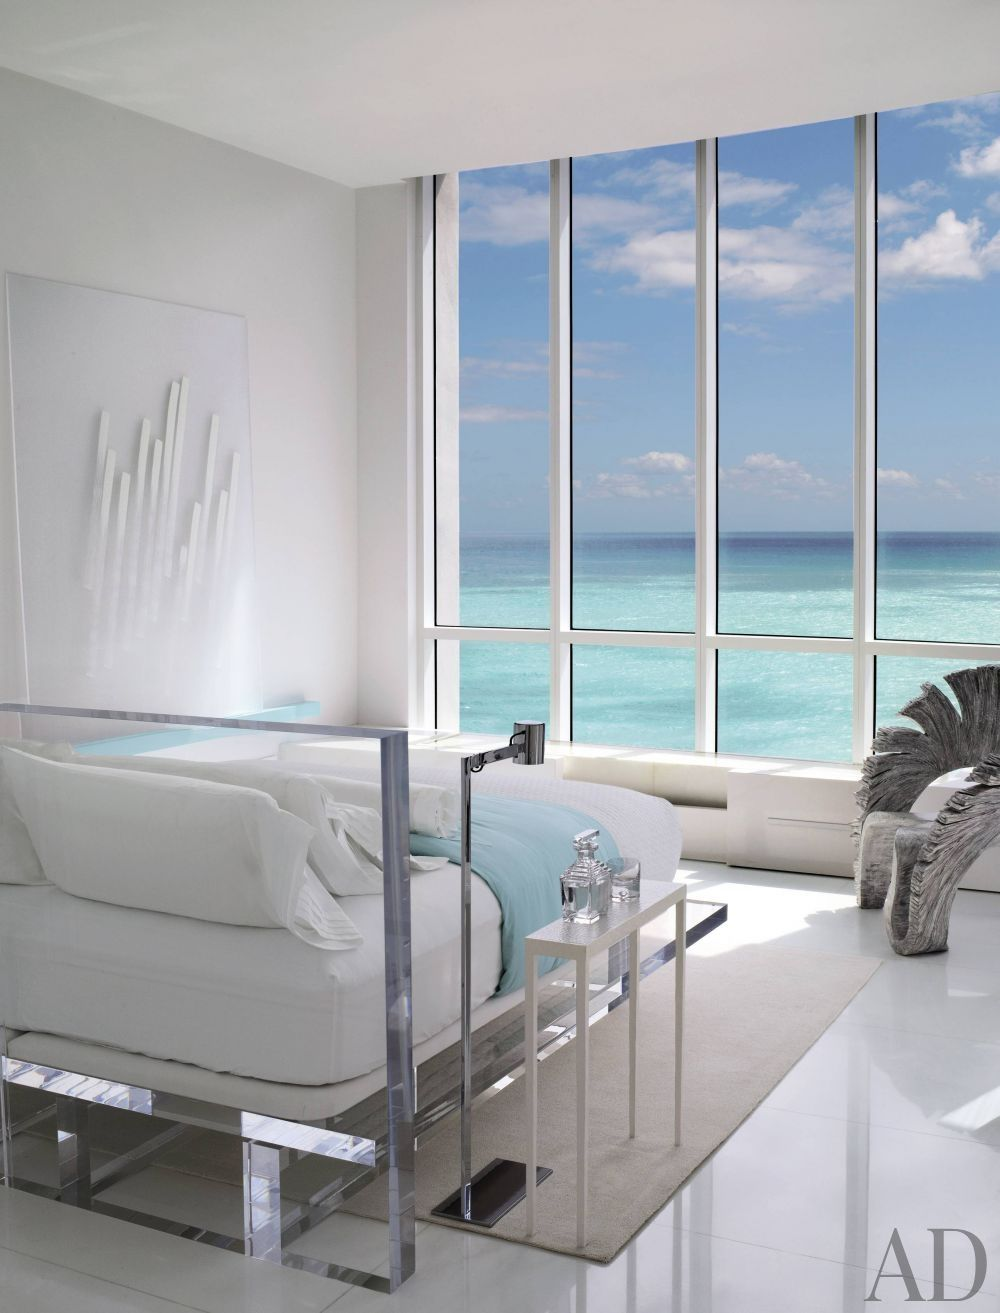 Modern beach bedrooms - Modern Bedroom By Jennifer Post In Miami Beach Florida Jennifer Post Designed The Lucite